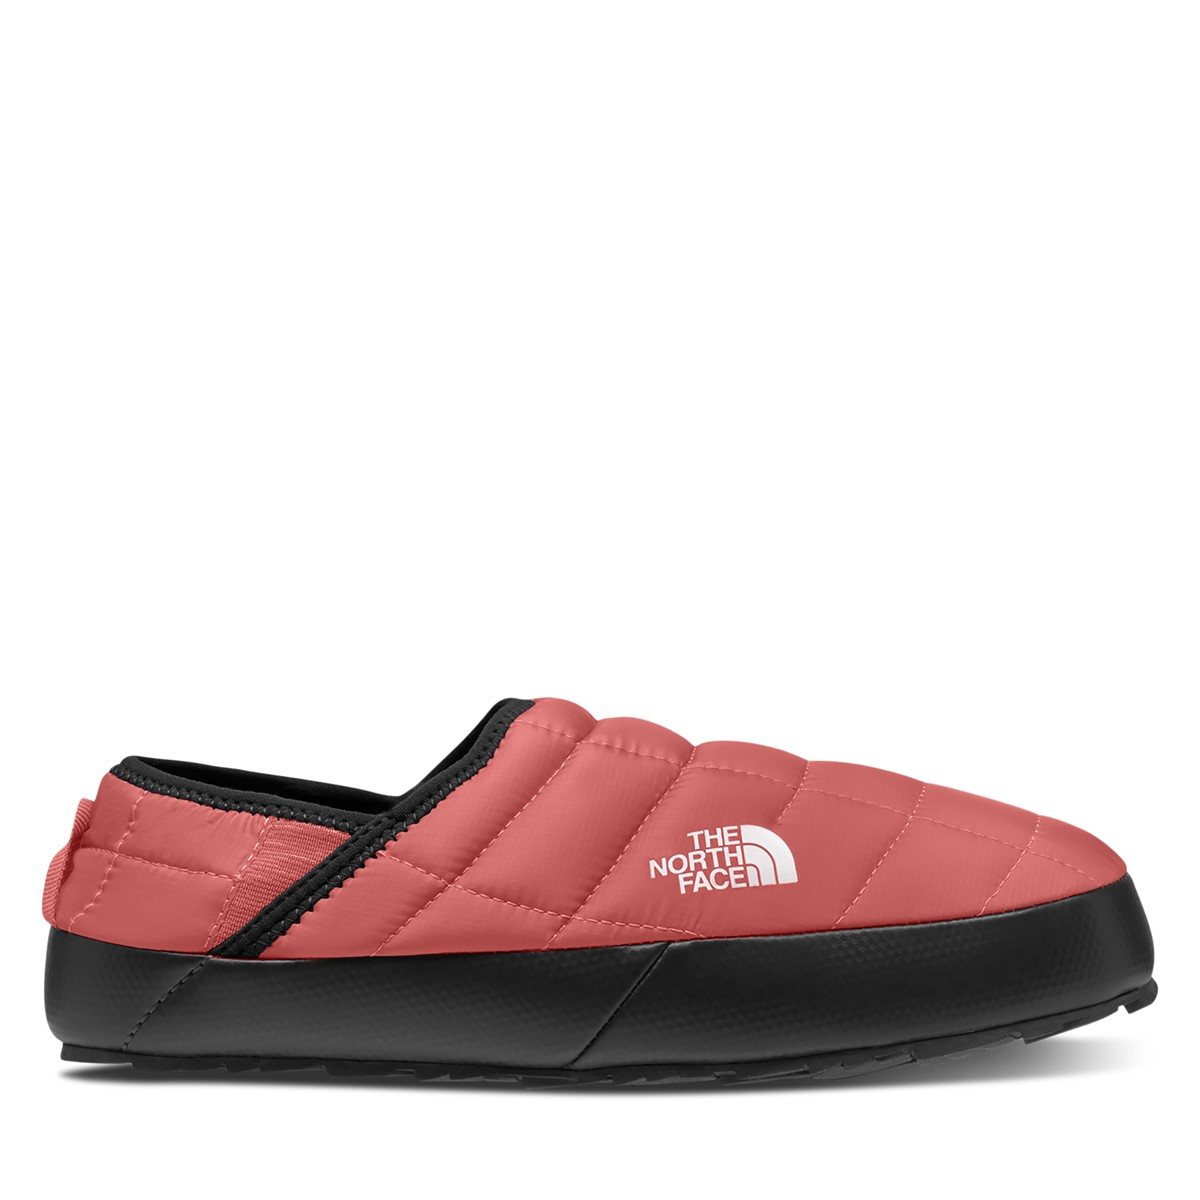 Women's Thermoball Mule Slippers in Pink